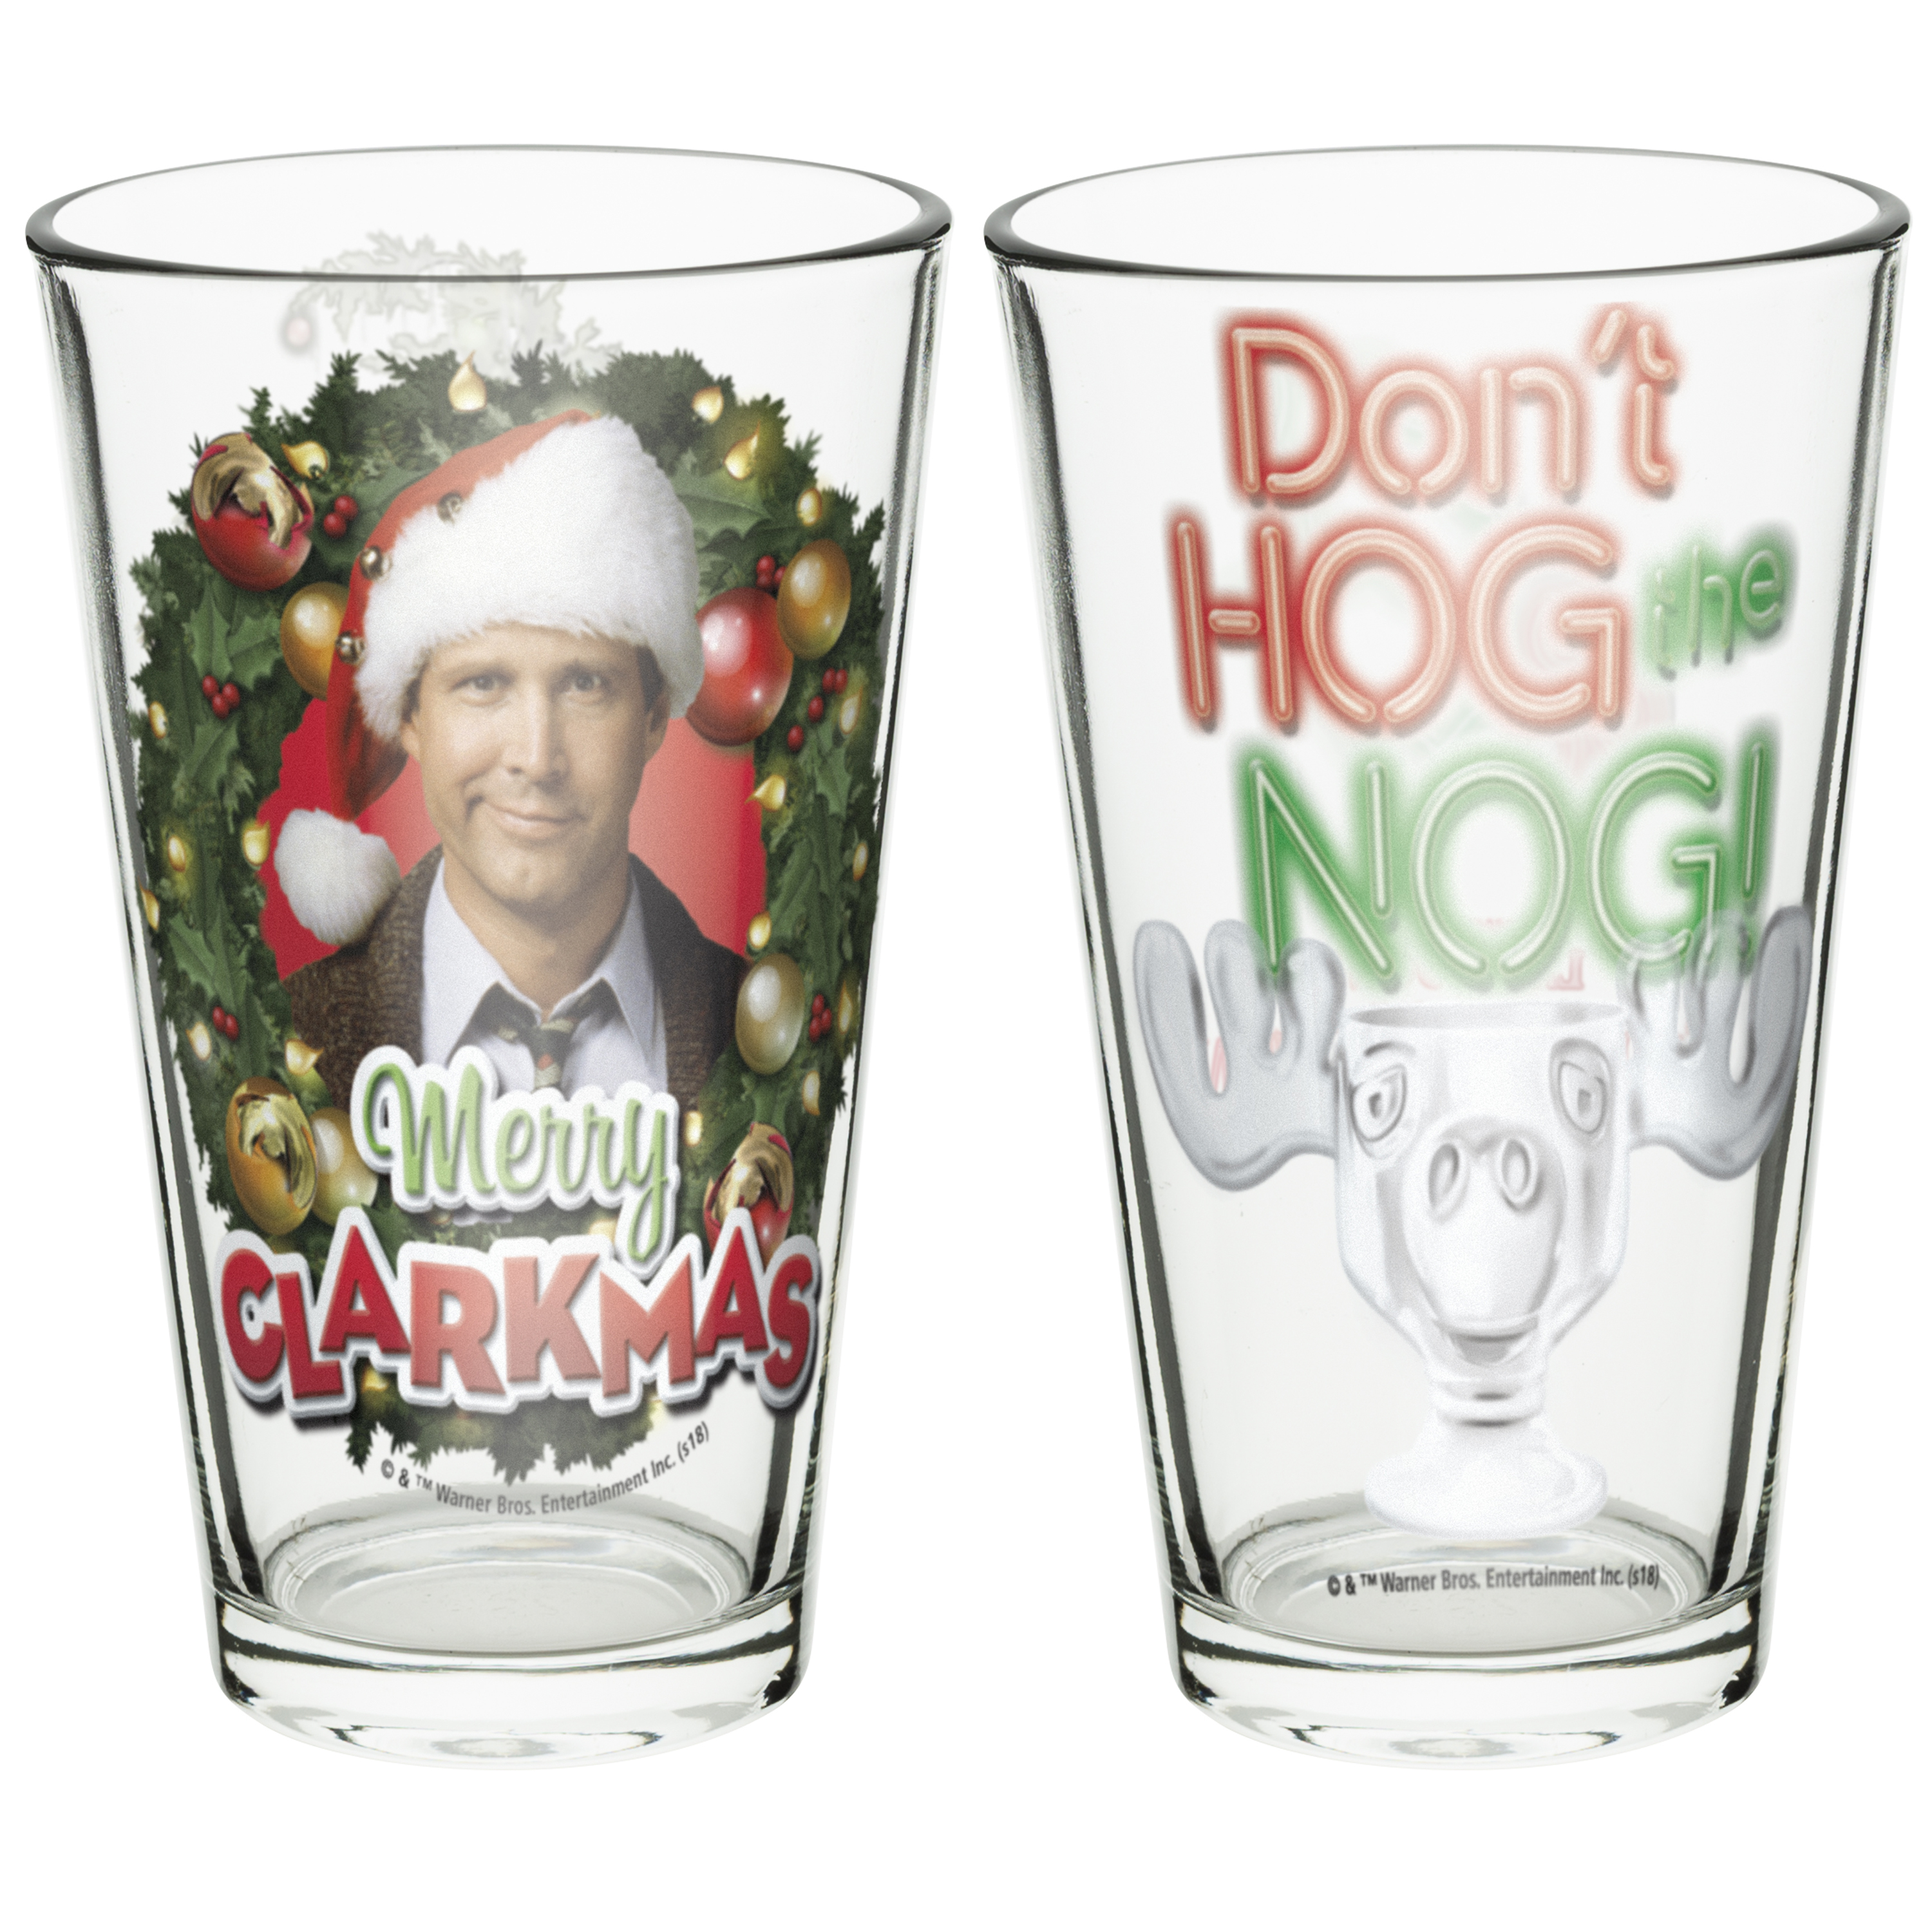 National Lampoon's Christmas Vacation 16 ounce Pint Glasses, Clark Griswold, 2-piece set slideshow image 1